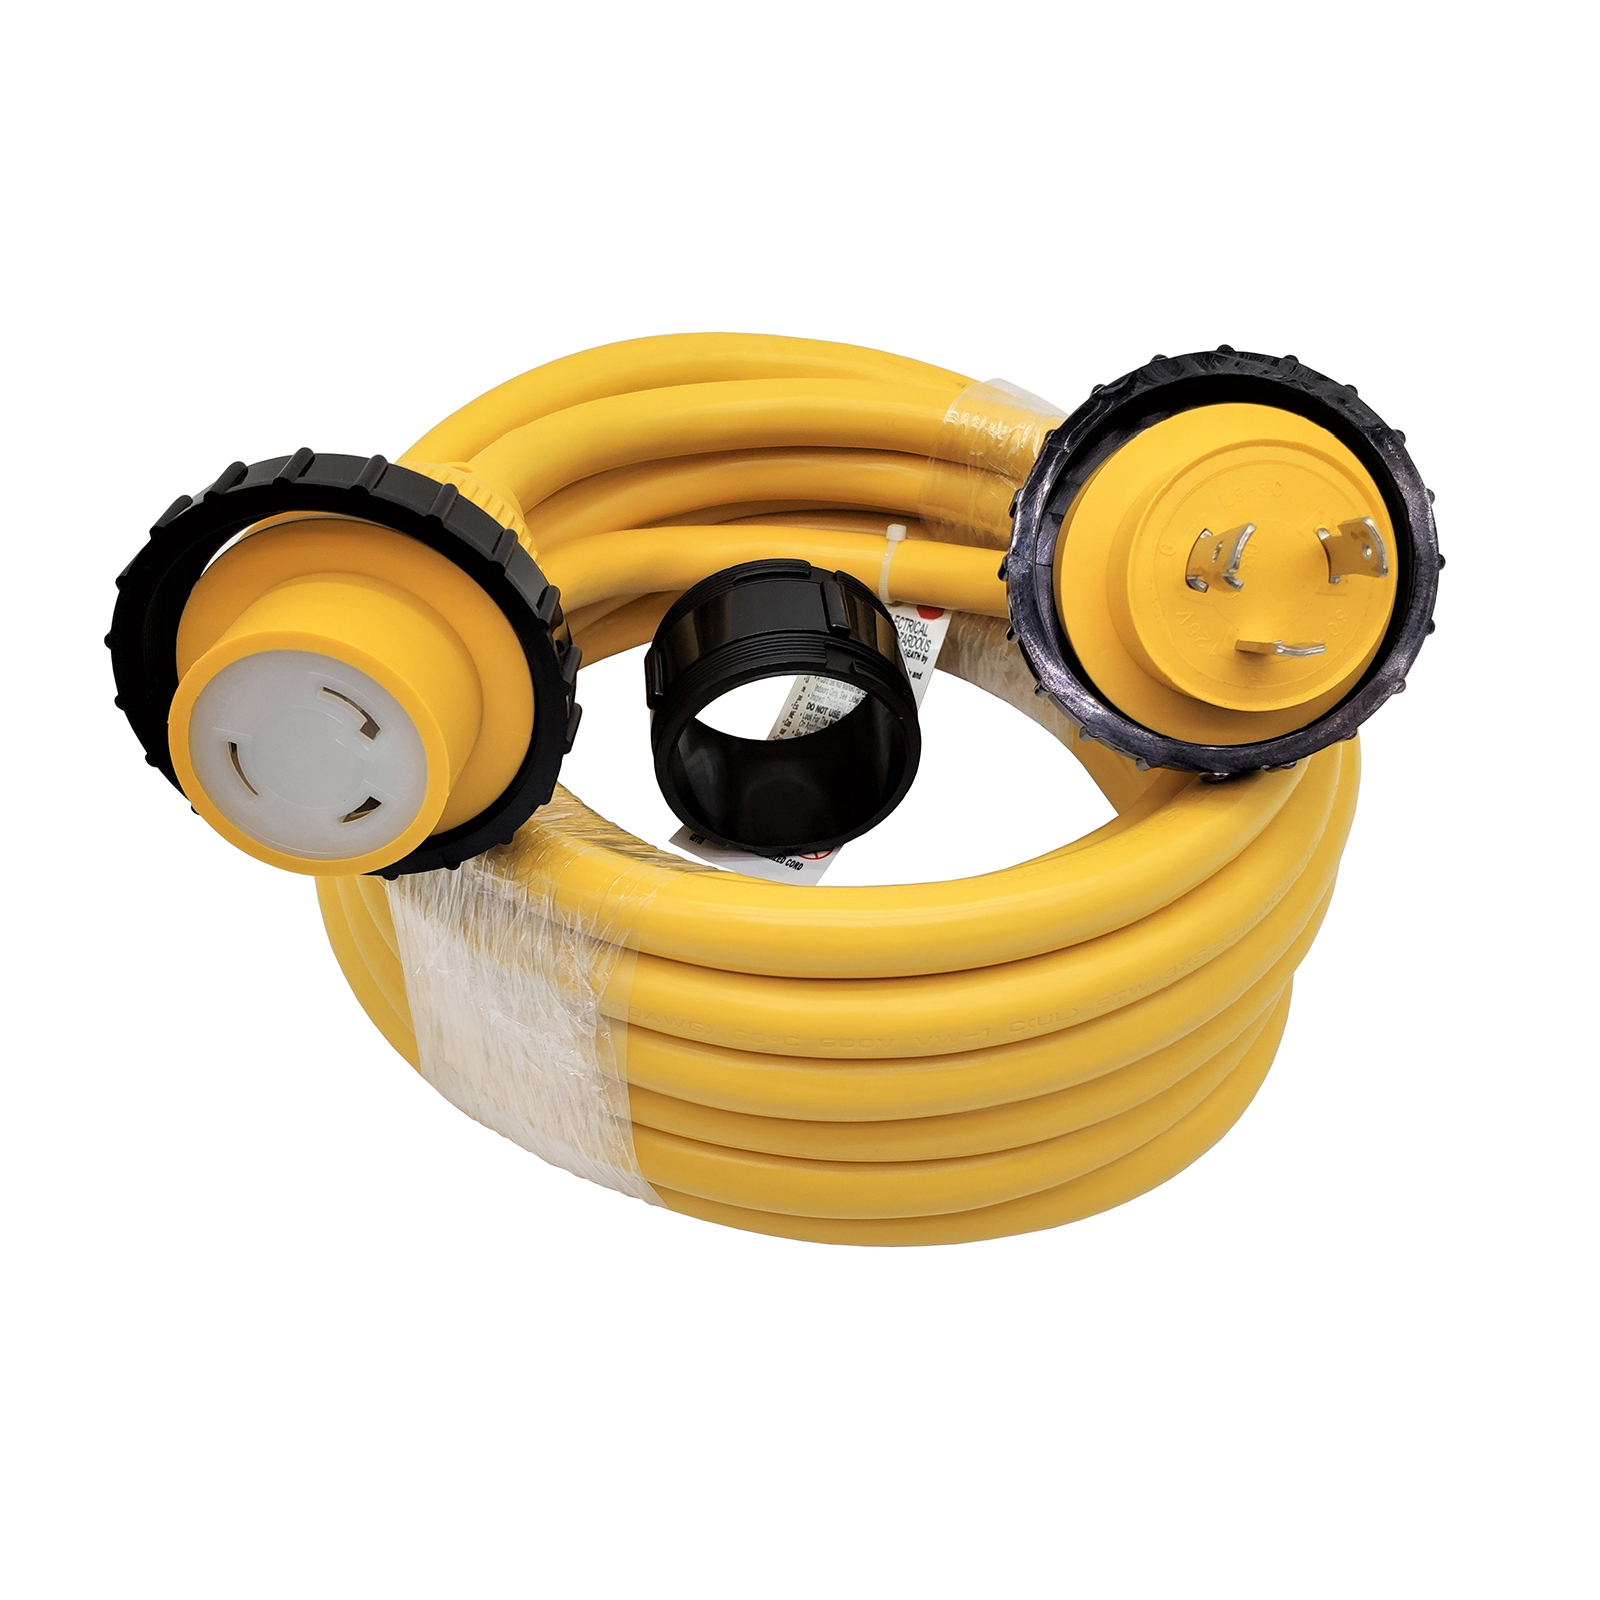 RV 30A Shore Power Extension Cord (25 FT)